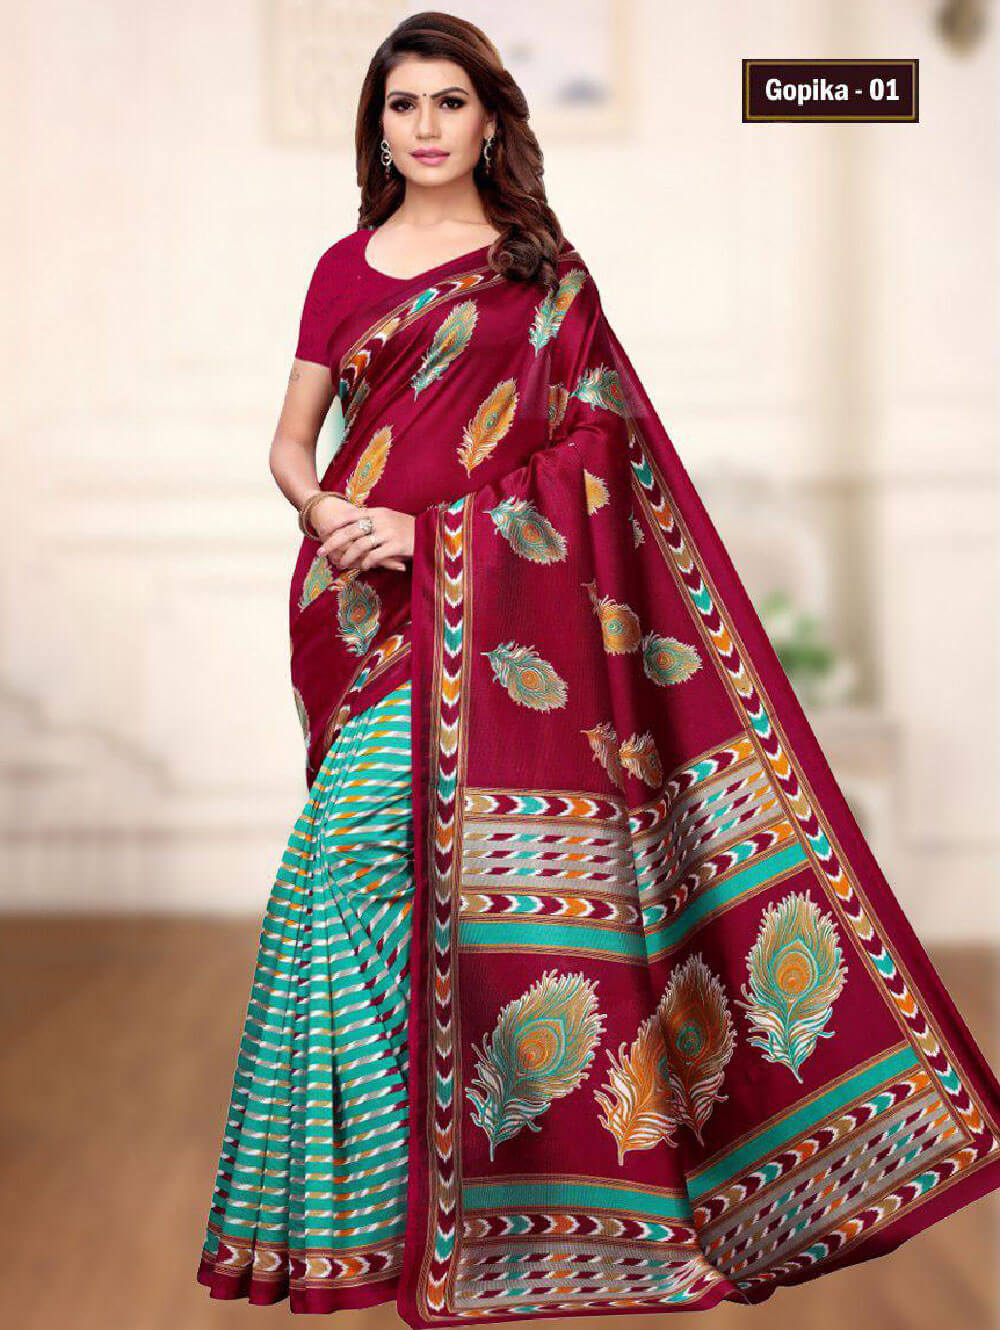 GOPIKA01 Gopika Mysore Designer Silk Saree Collection